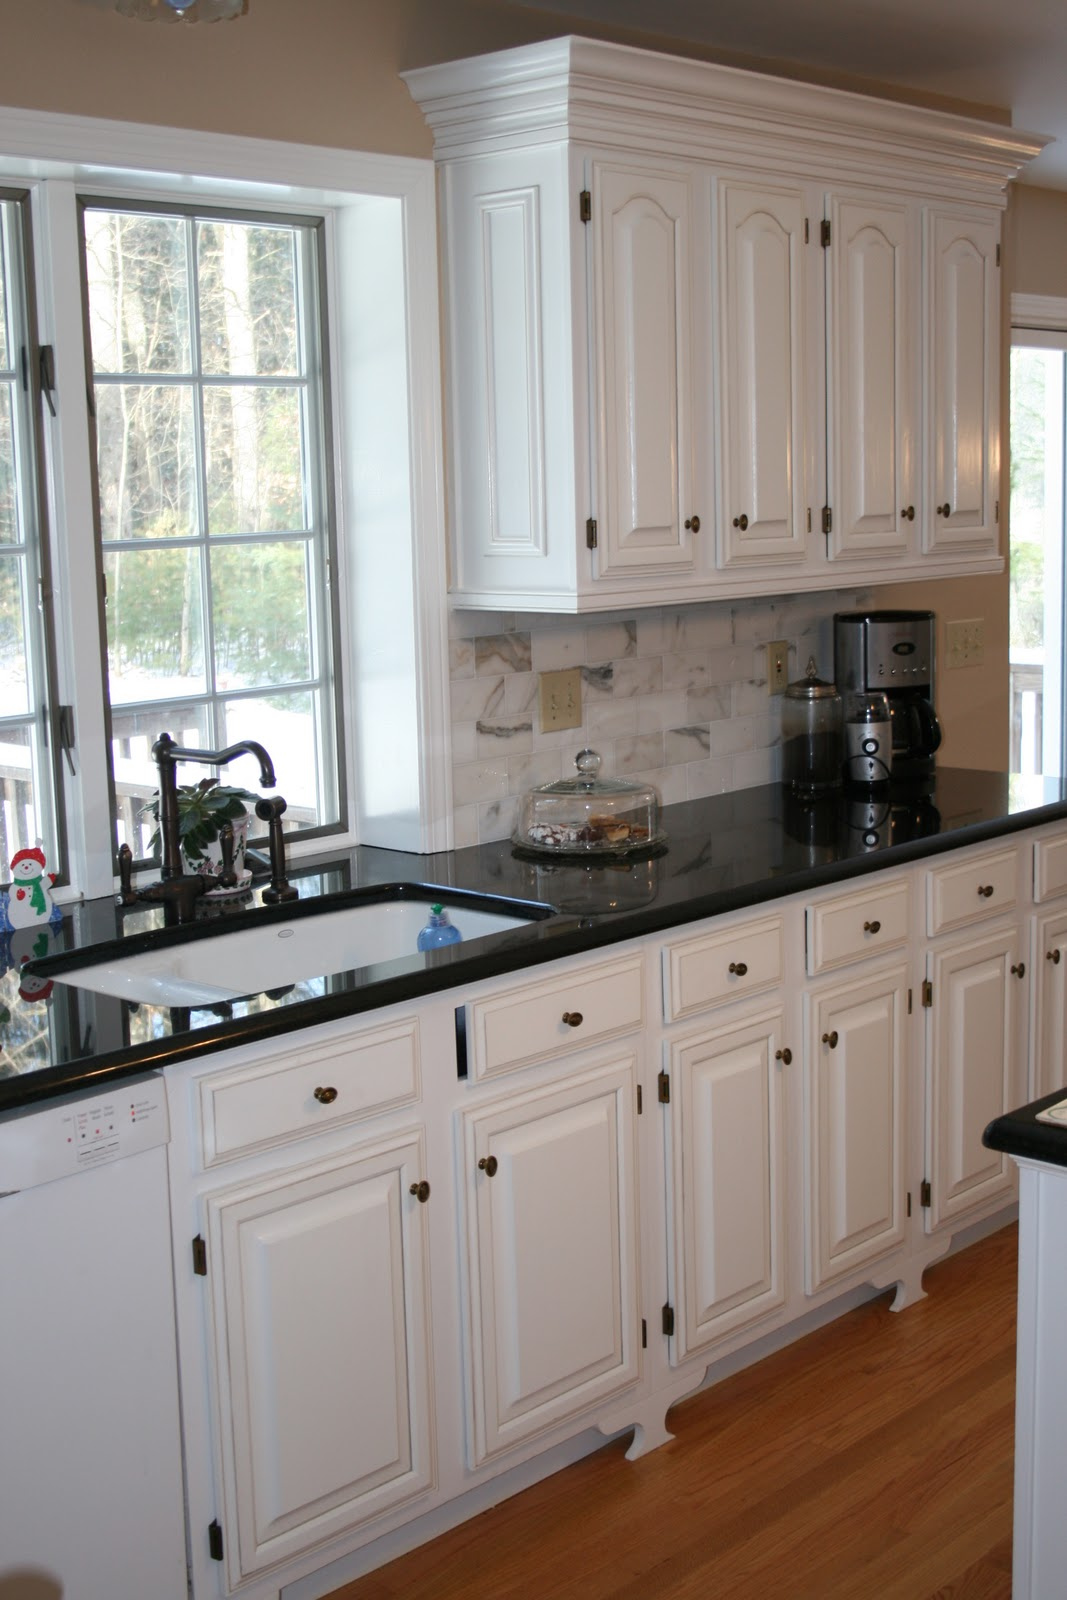 DESIGN NOTES: Kitchen Remodel Completed